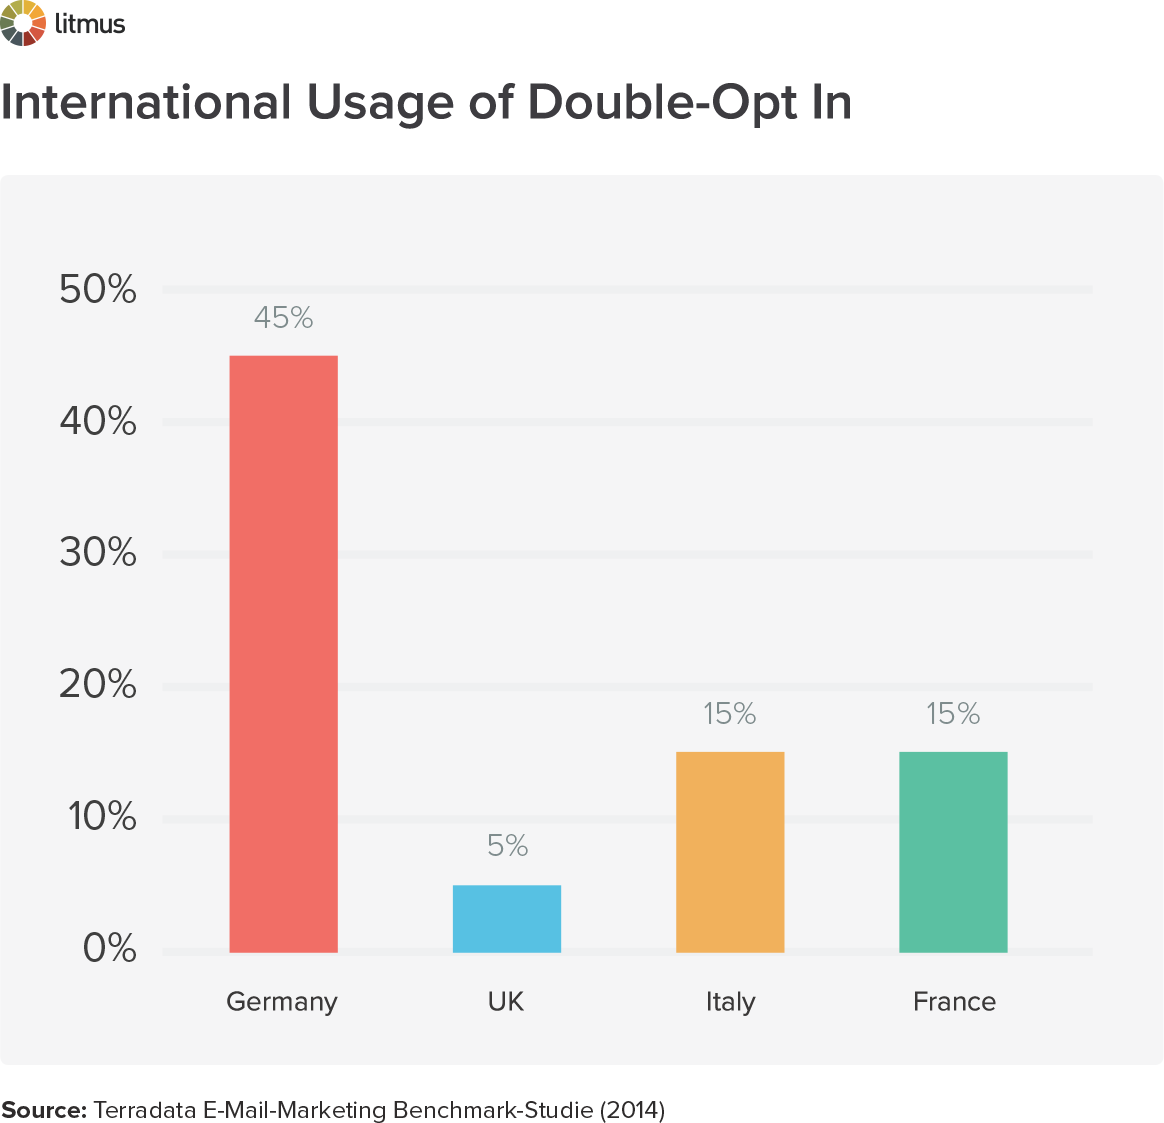 International Usage of Double-Opt In